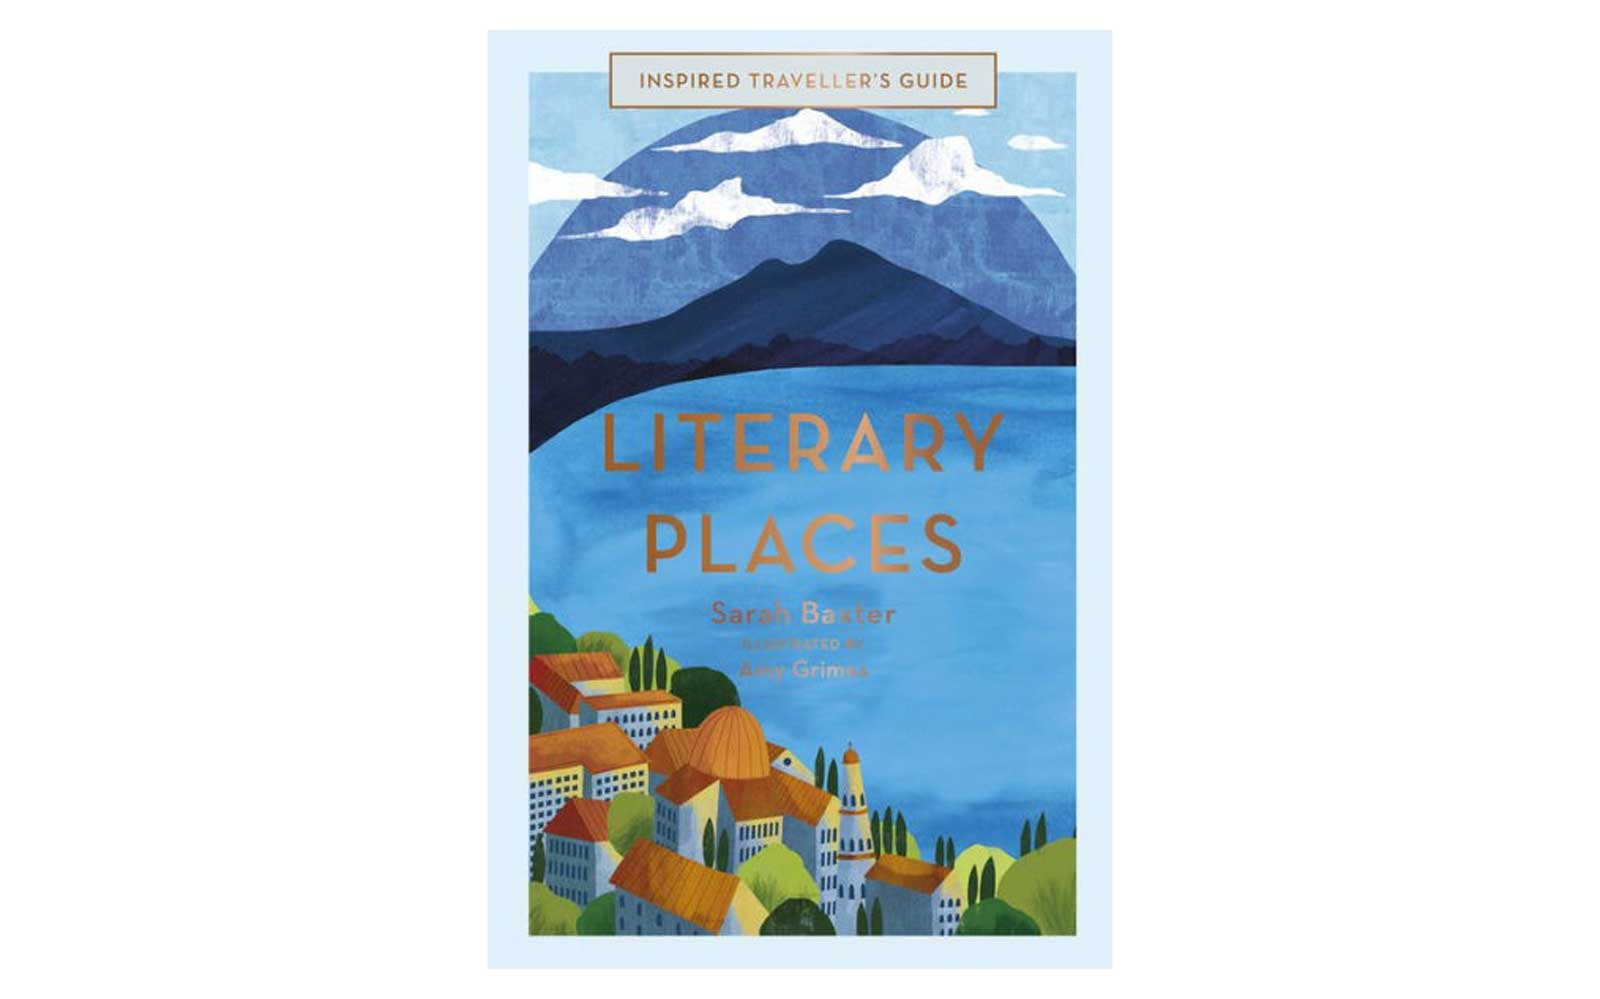 Literary Places Book by Sarah Baxter